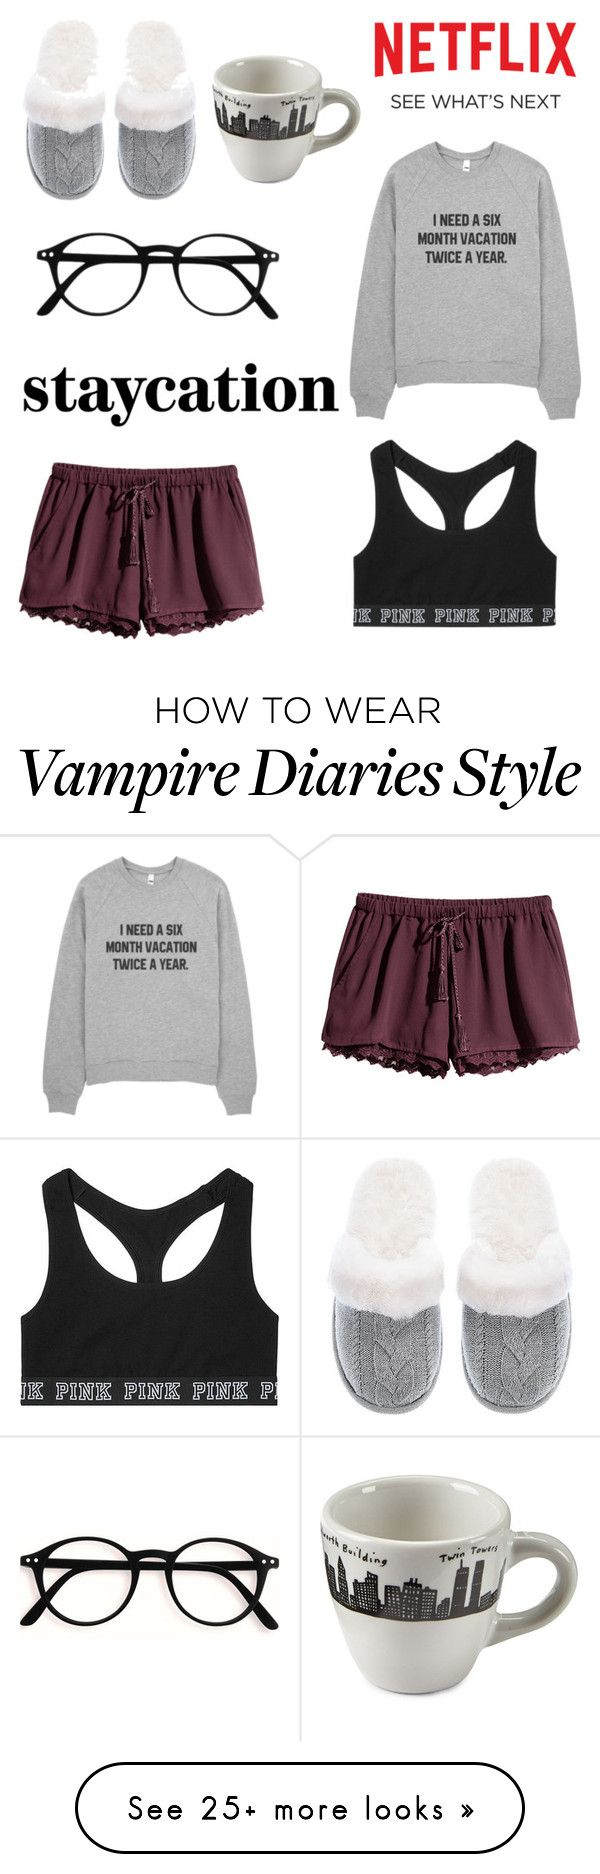 """""""binge watching vampire diaries"""" by ilyse-stevenson on Polyvore featuring H&M, Victoria's Secret, Fishs Eddy and Identity"""